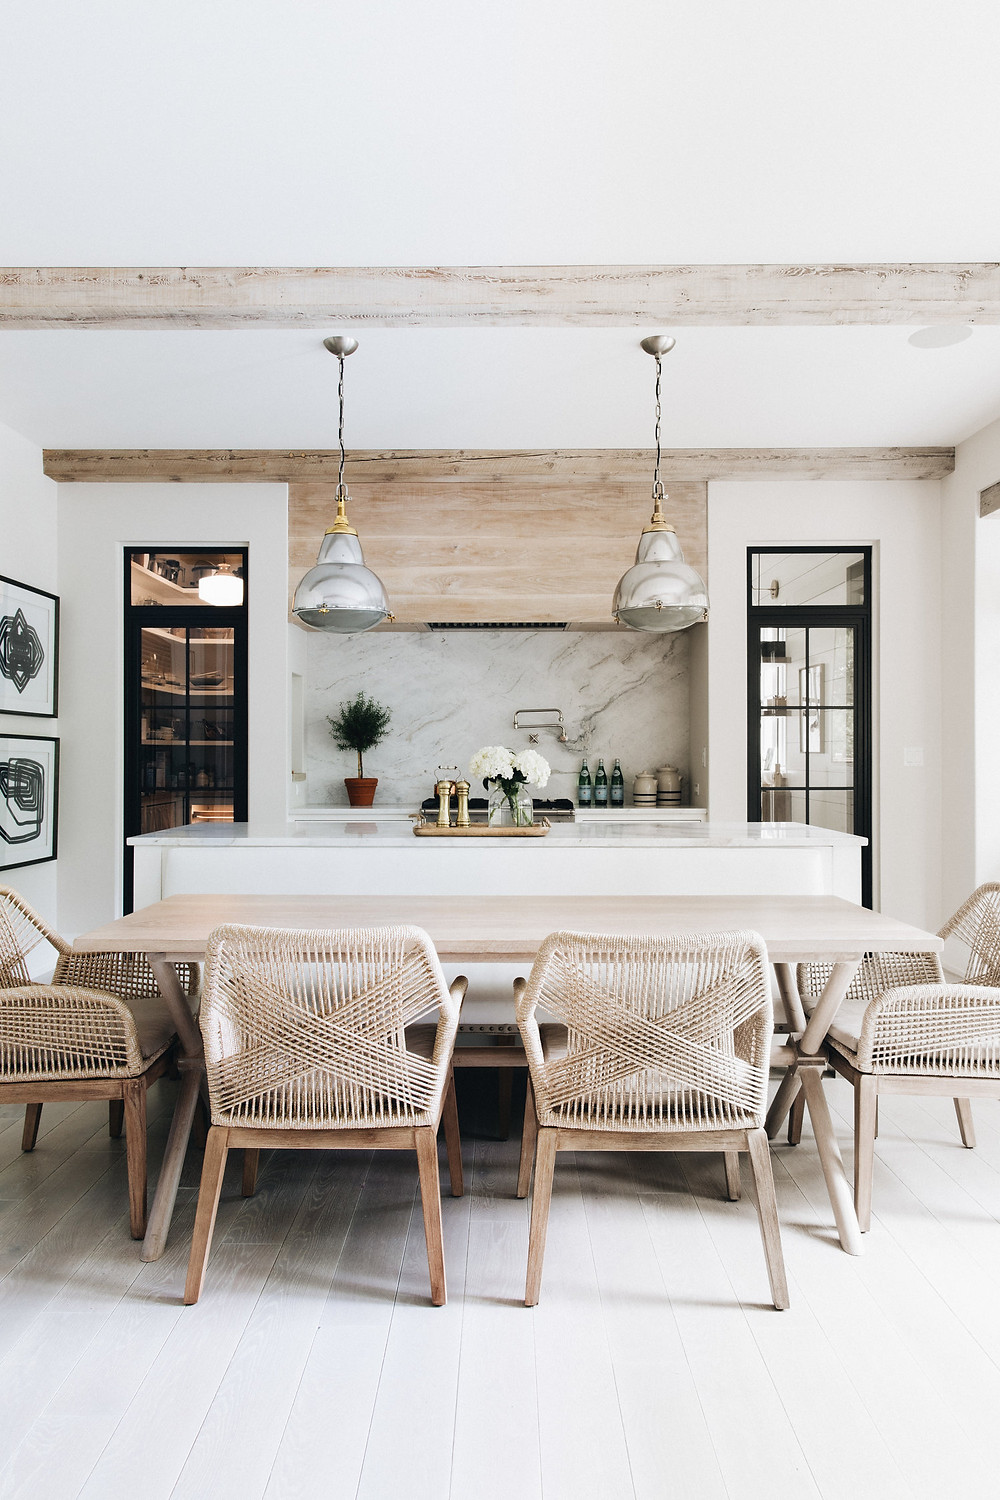 brushed aluminum and brass pendant lights over kitchen island with exposed beams wood hood fan detail marble backsplash dark wood pantry doors woven wood chairs at dining table light hardwood floors